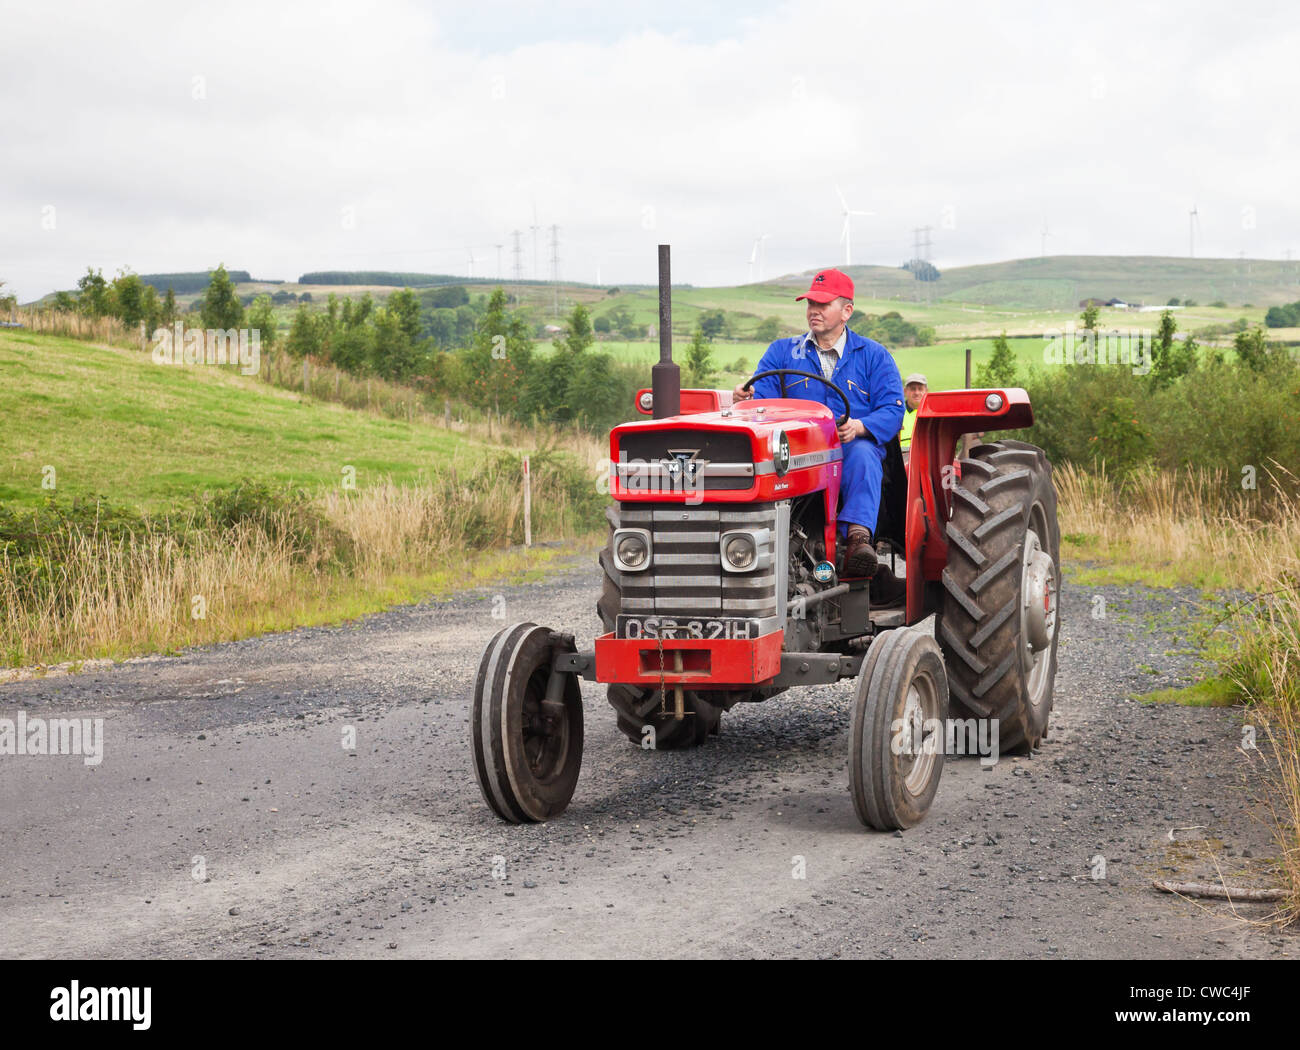 Enthusiast driving a red vintage Massey Ferguson 165 tractor